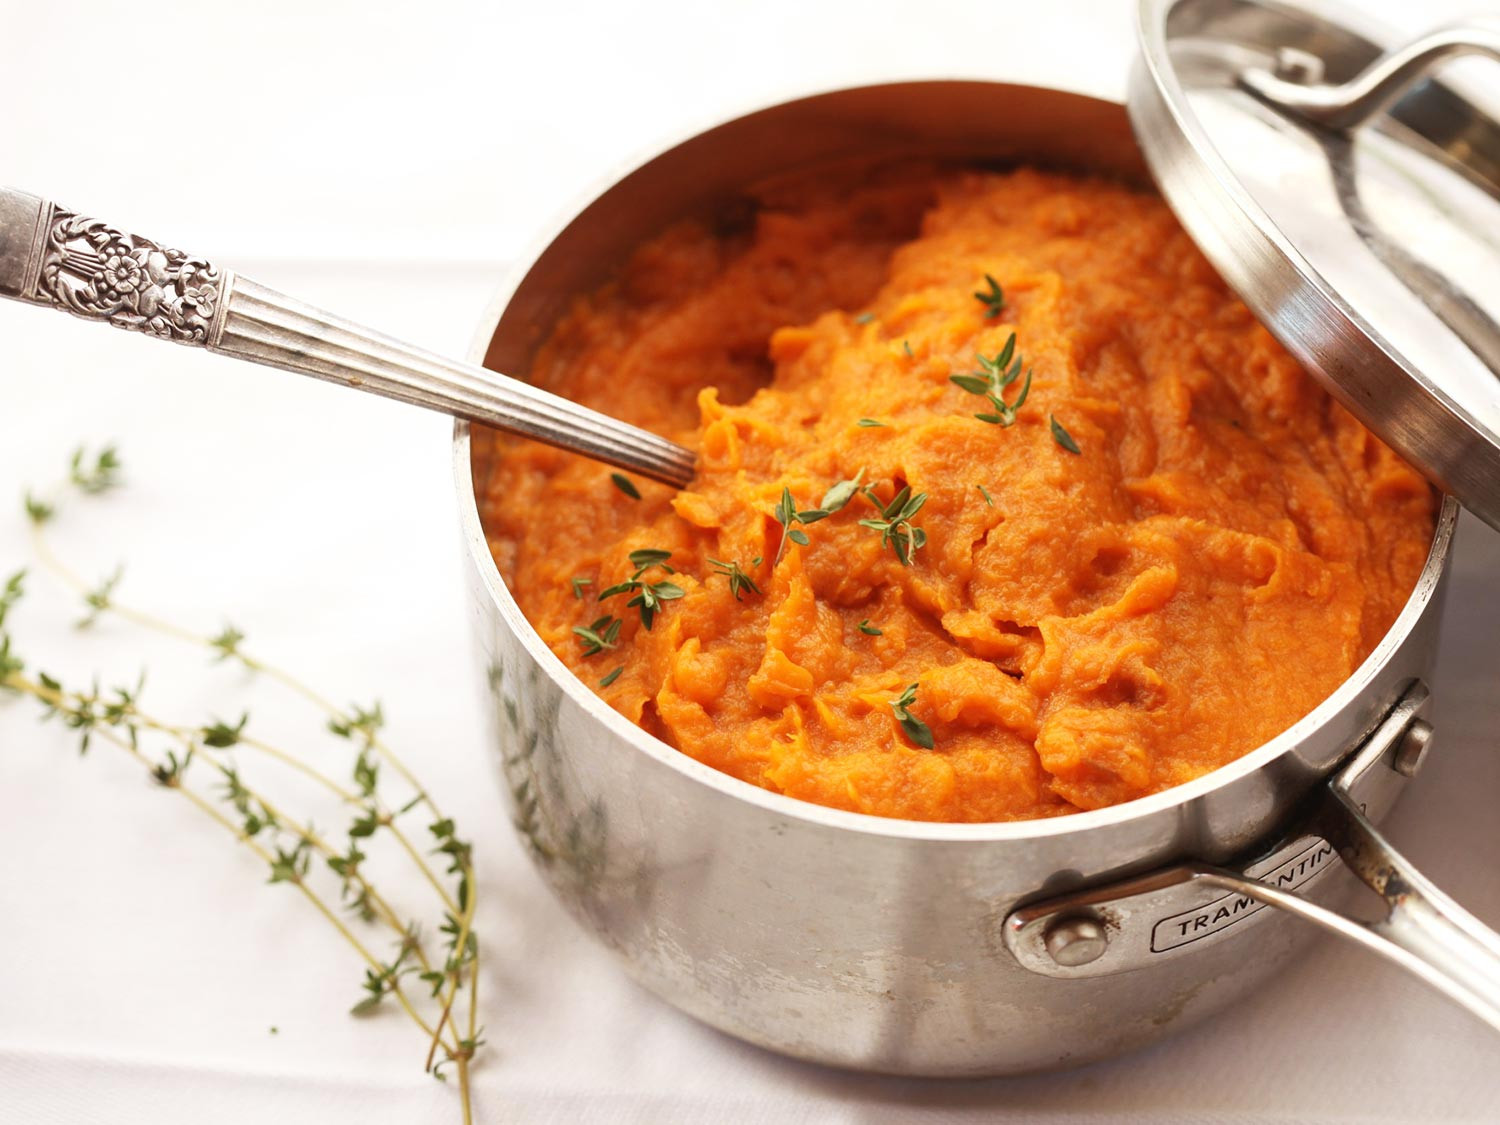 Thanksgiving Sweet Potatoes Recipe  14 Sweet Potato Recipes for Thanksgiving That Are Just